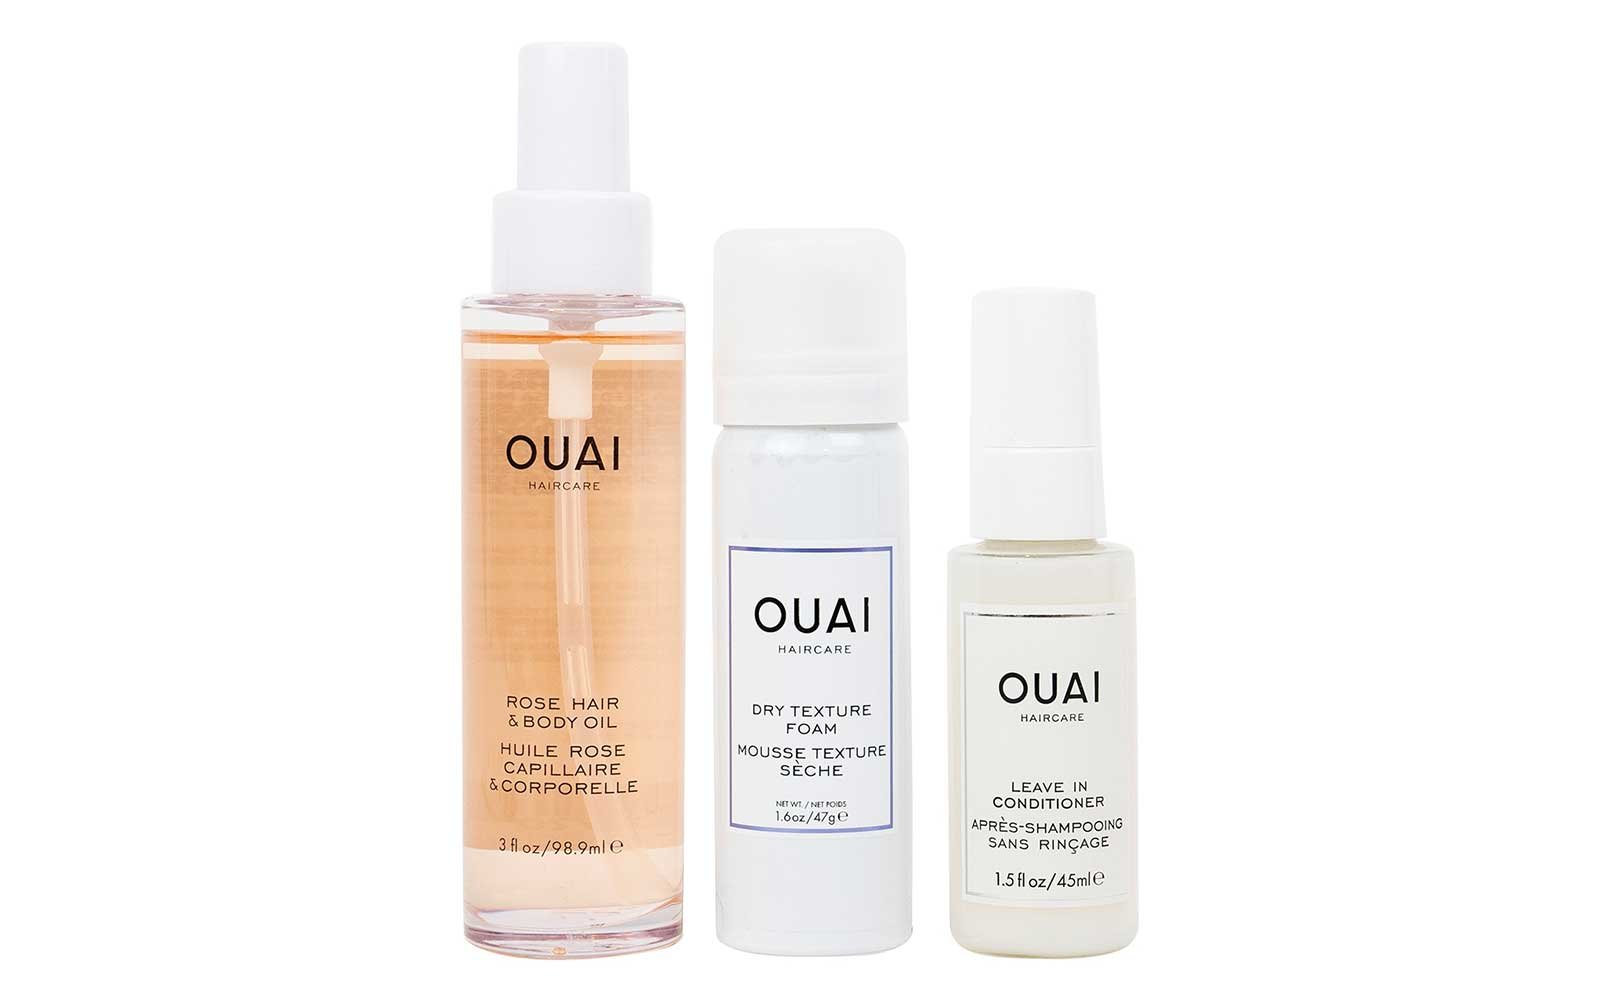 Ouai travel hair kit